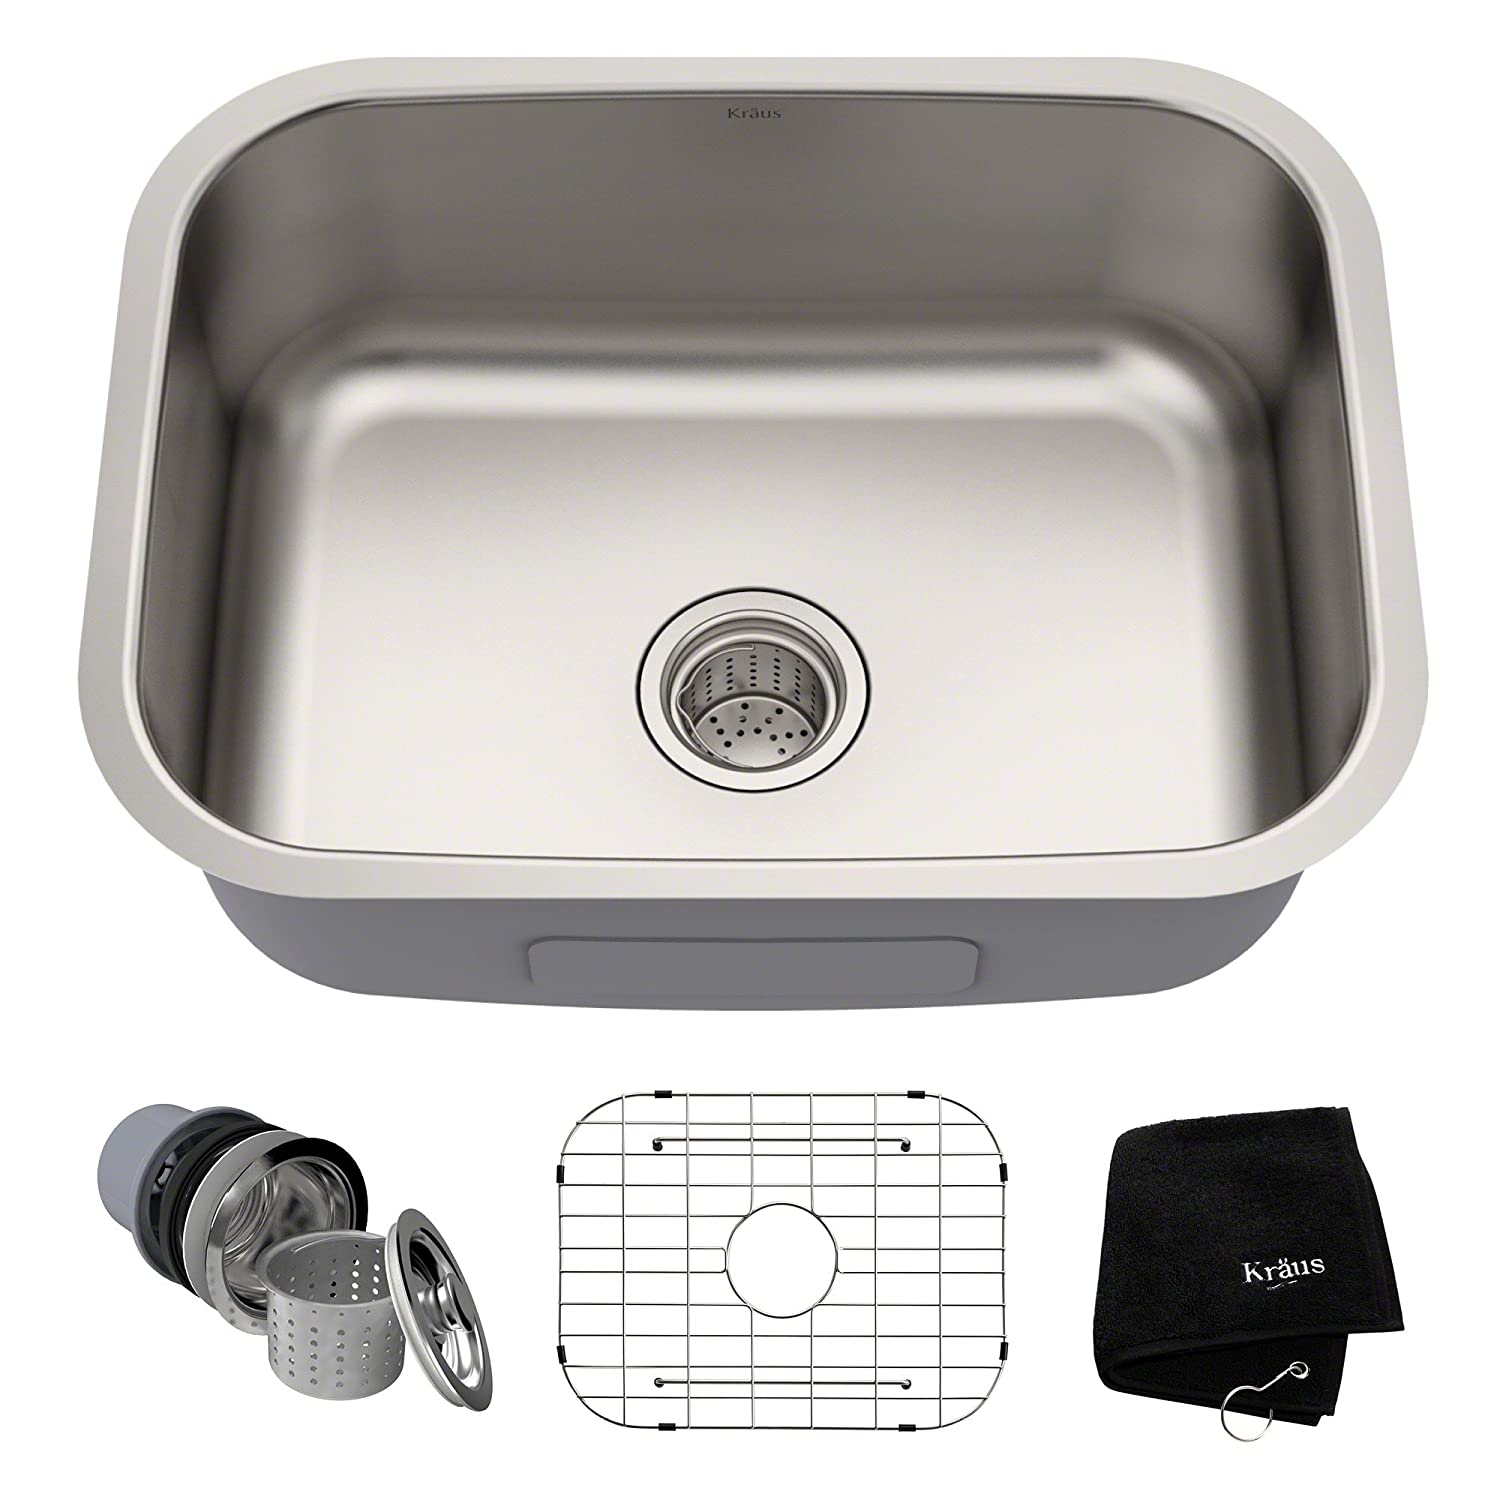 Kraus Kbu12 23 Inch Undermount Single Bowl 16 Gauge Stainless Steel Kitchen Sink Amazon Com